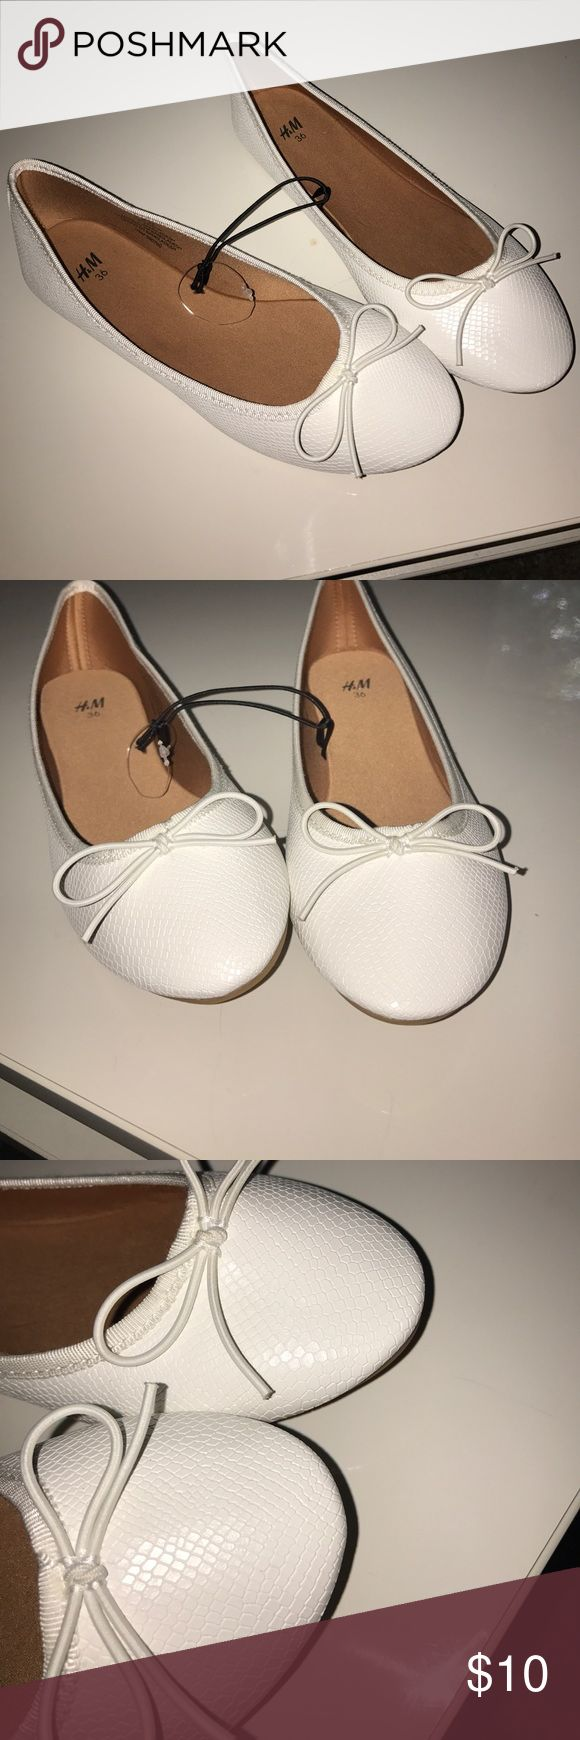 H&M Girls/Women Ballet Pumps Ballet pumps in imitation suede with a grosgrain trim at the top, satin linings and insoles and rubber soles. H&M Shoes Flats & Loafers